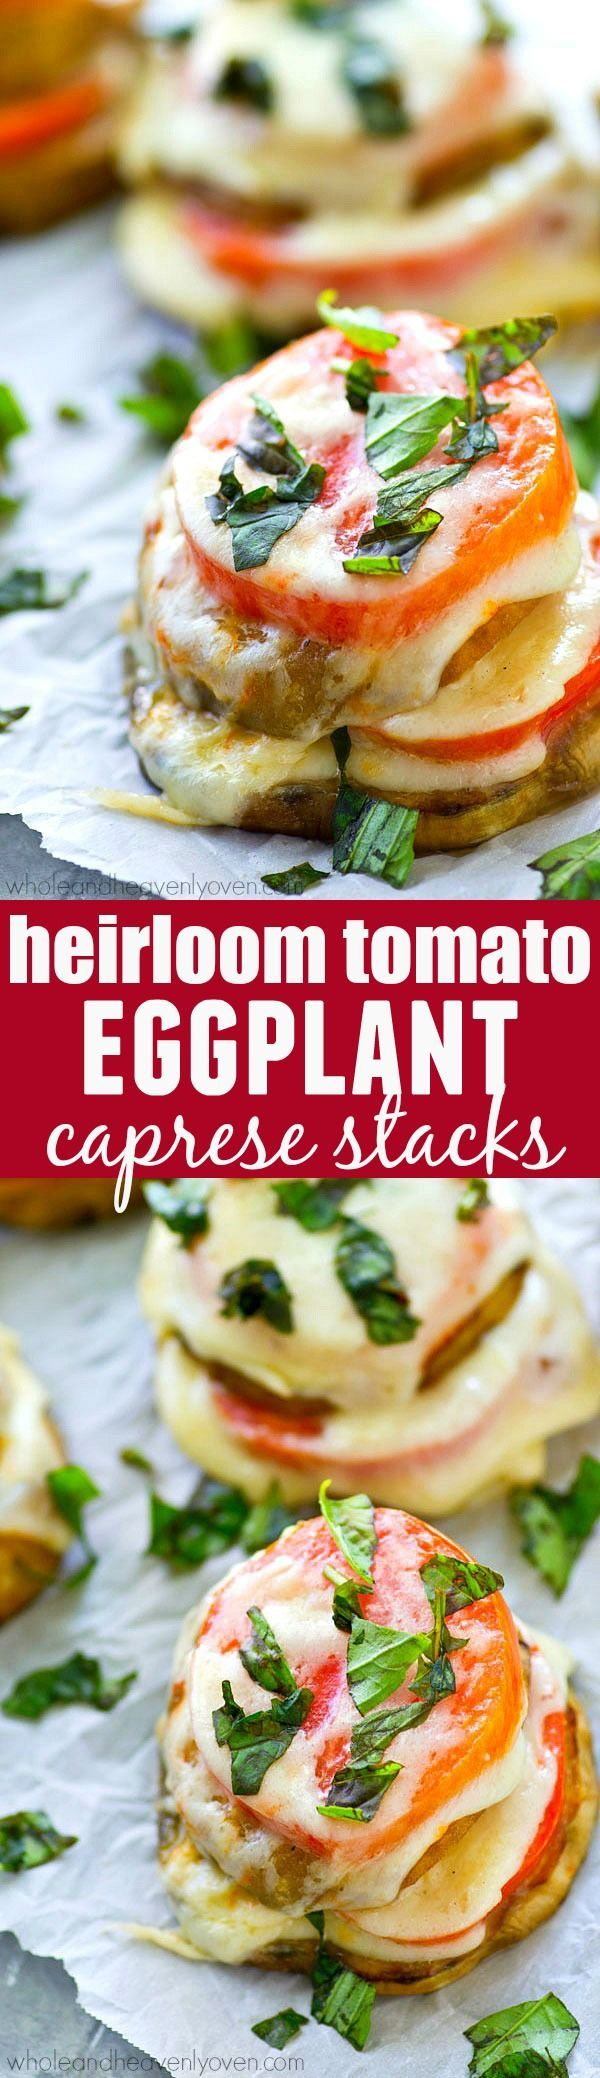 These layered caprese stacks feature fresh heirloom tomatoes, eggplant, and…